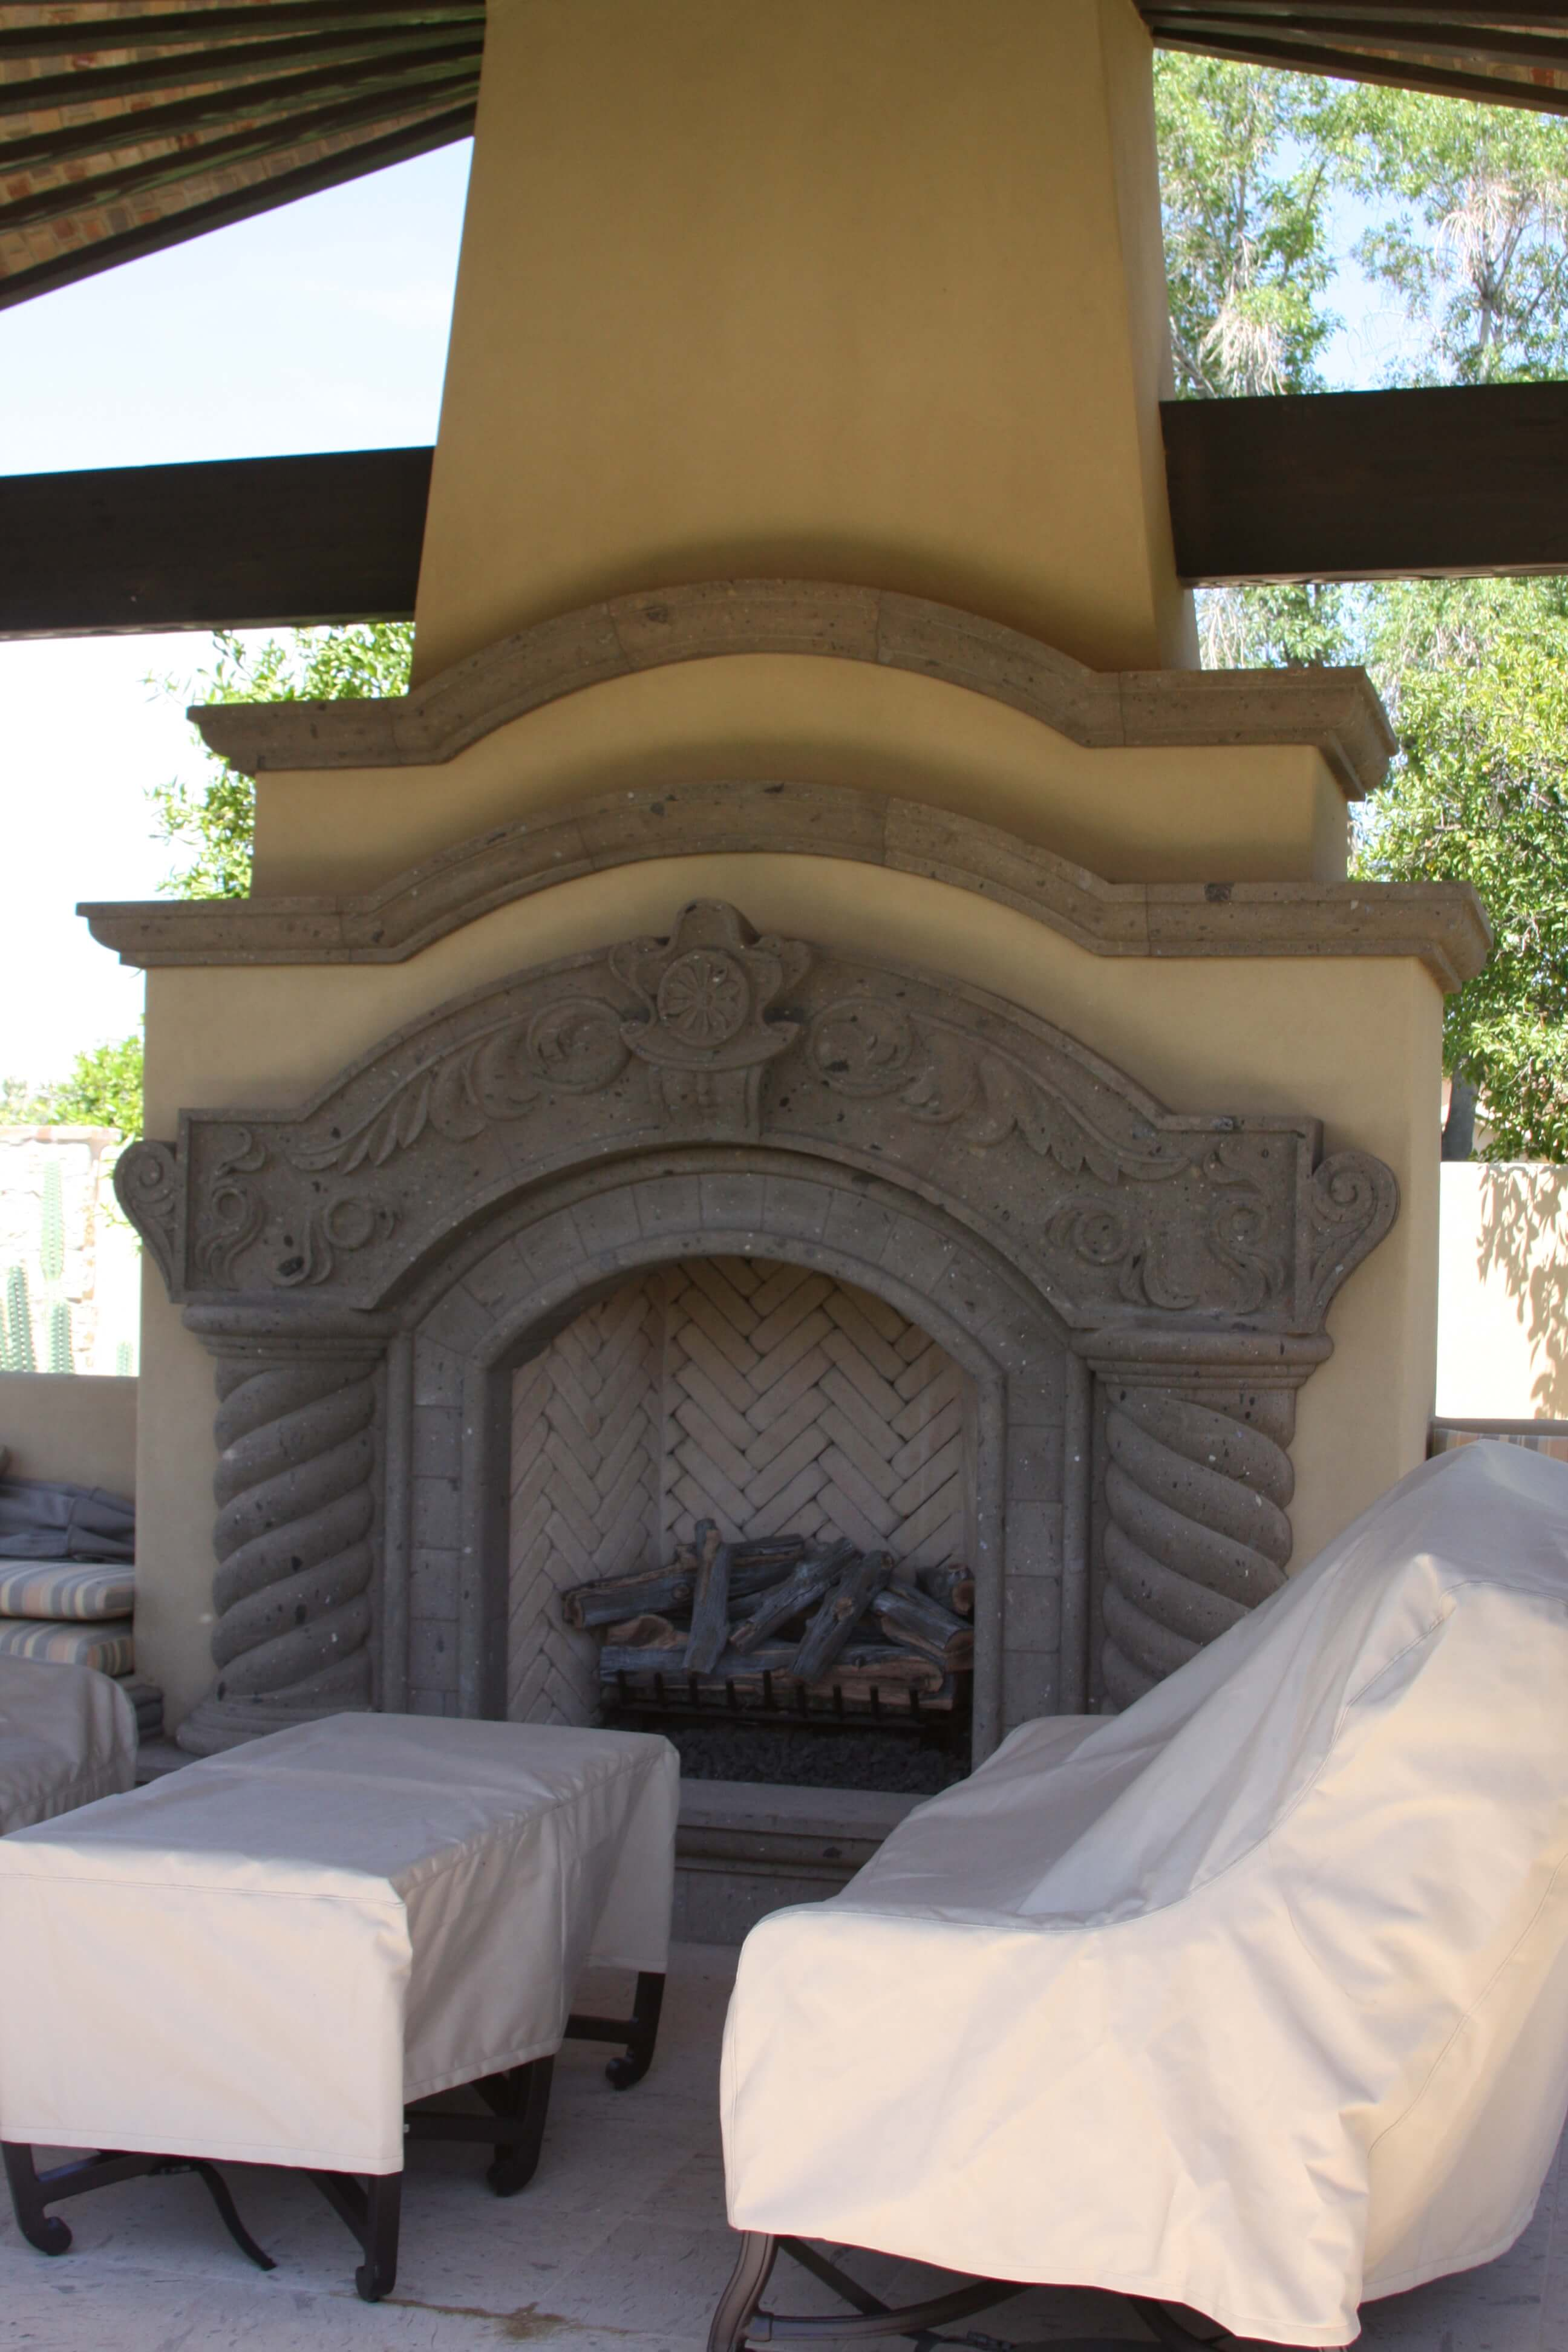 14-Old-World-Fireplace-Surround-at-Ramada-in-Tobacco-Cantera-Stone